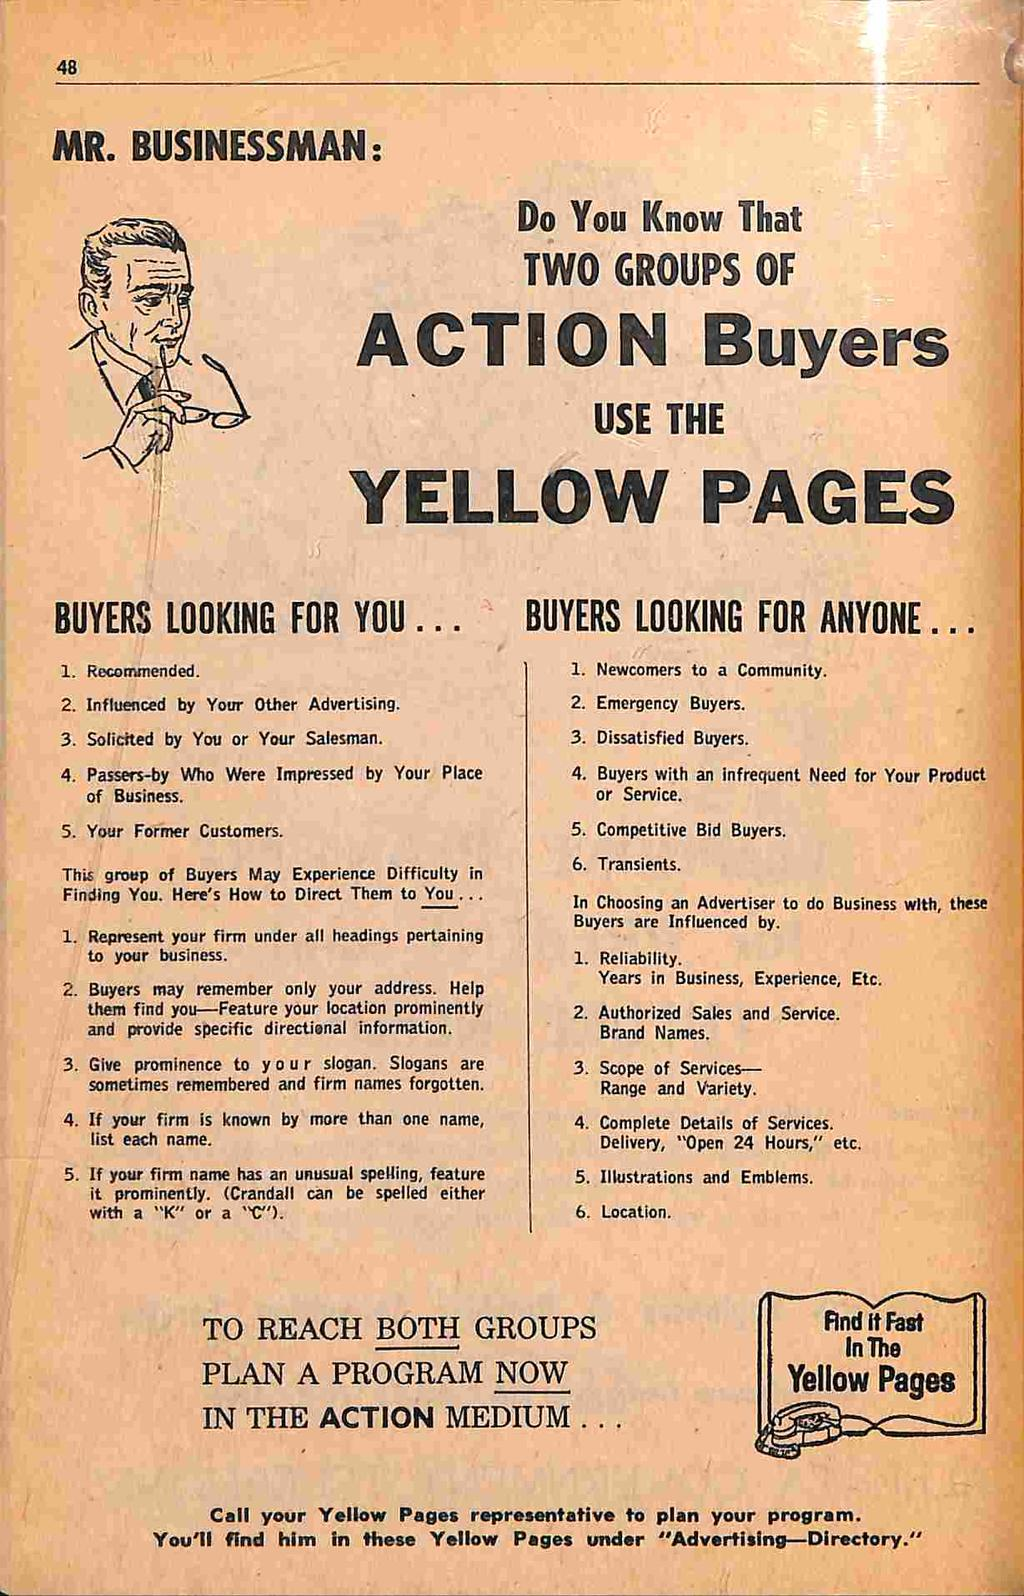 ACTION Buyers YELLOW PAGES  Yellow Pages TWO GROUPS OF MR